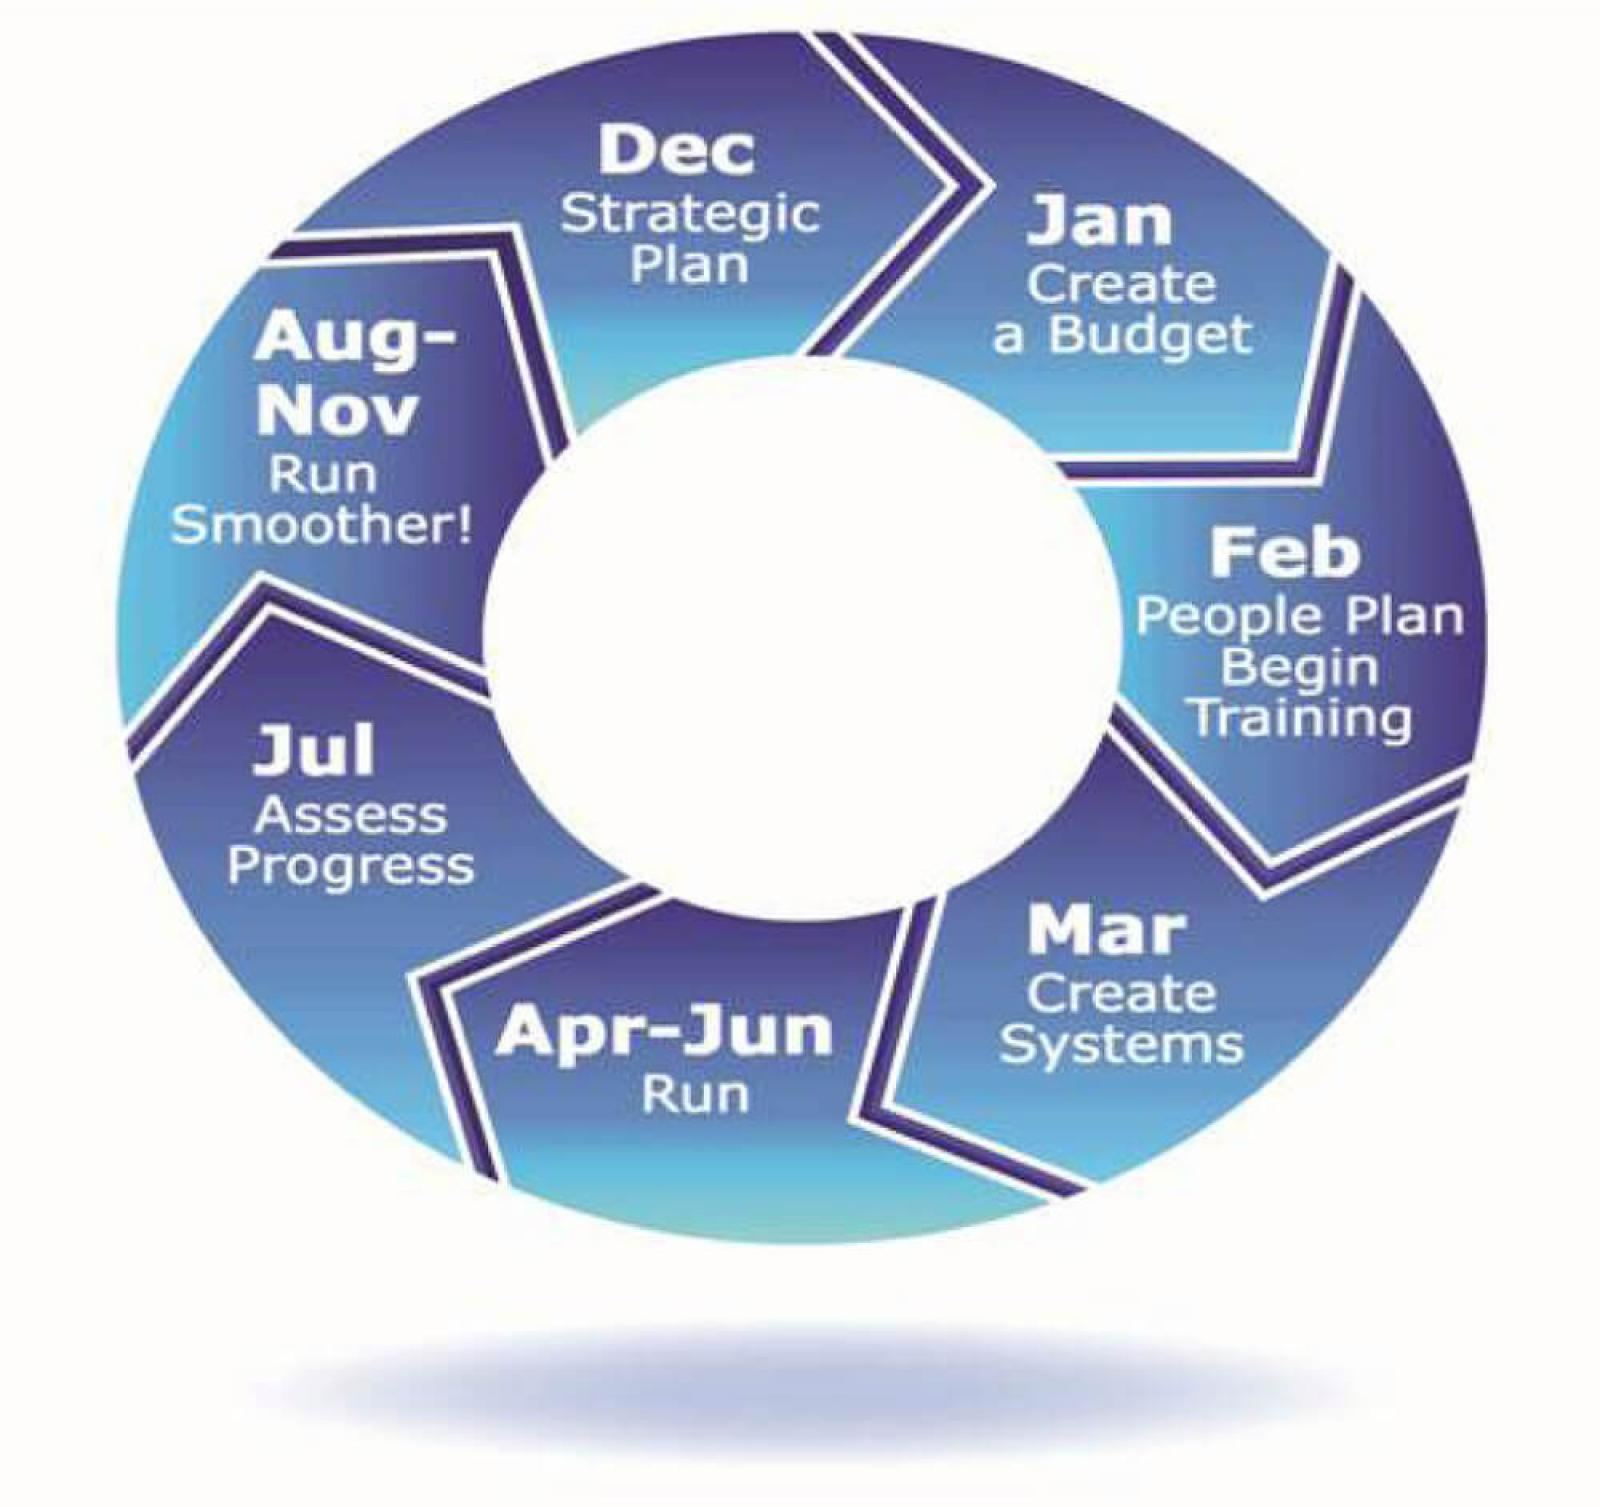 Above is a diagram of Bill's business model. Note that each month contains a different initiative that, when followed year after year, helps keep Bill on track to accomplishing his business goals.